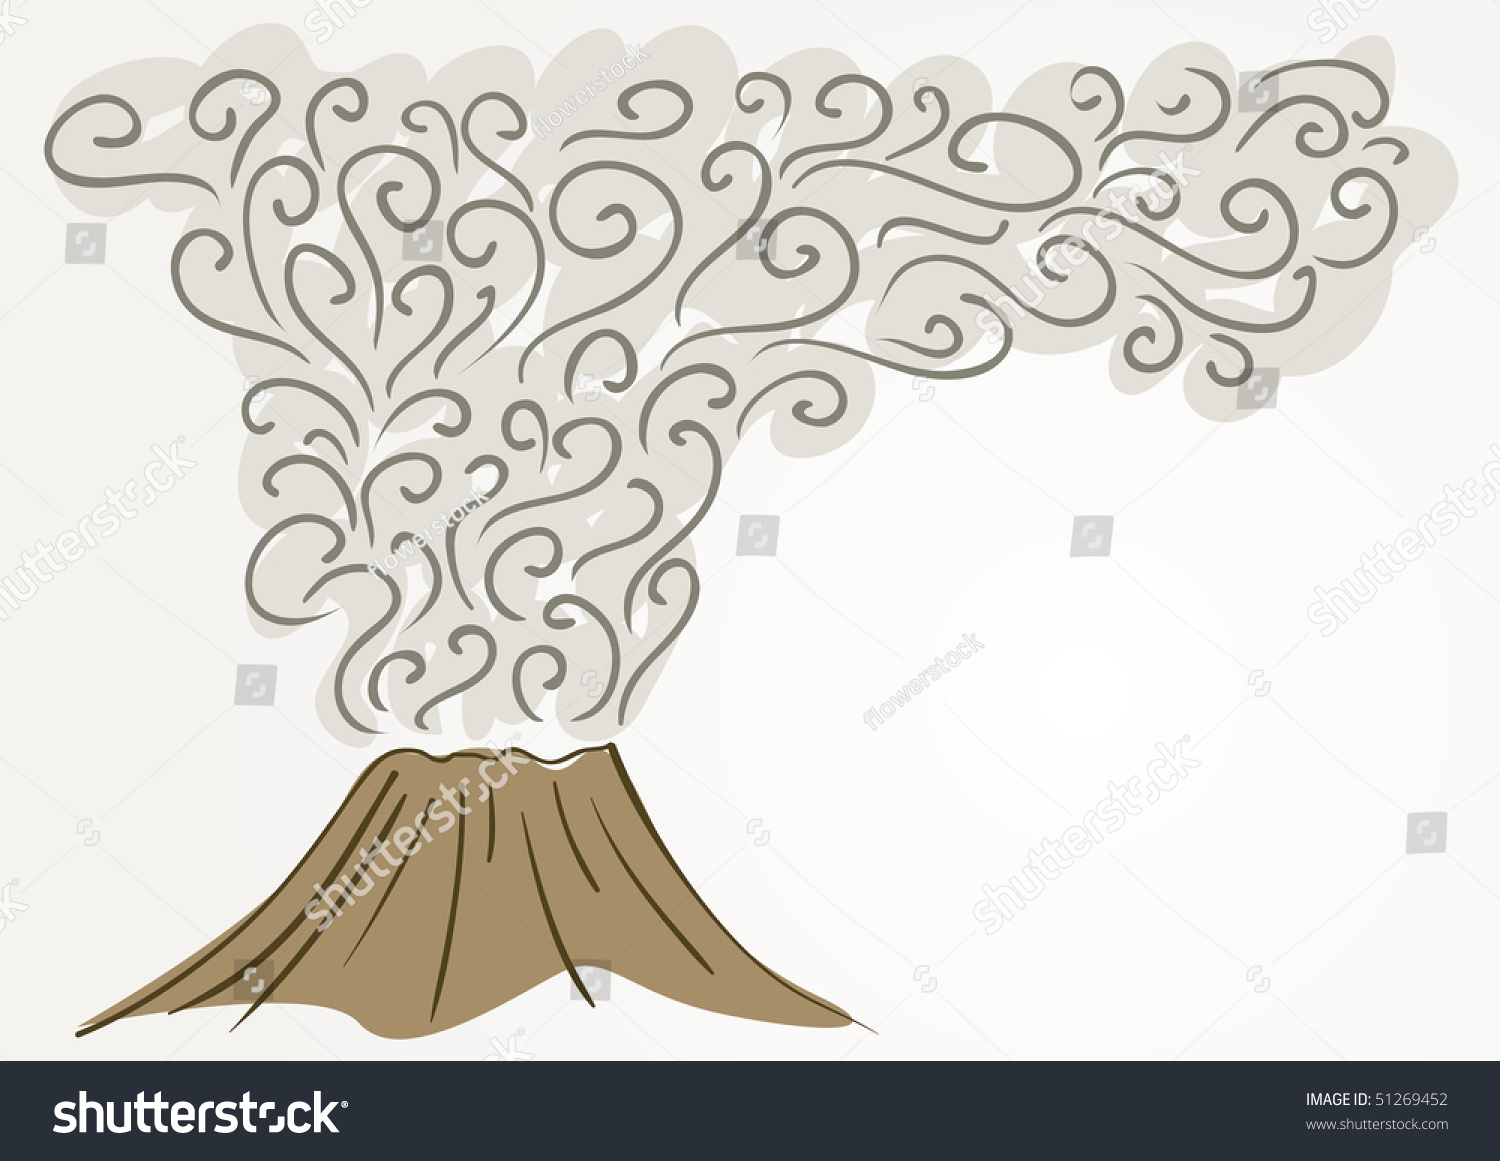 Line Drawing Volcano : Volcano vector background line art drawing stock